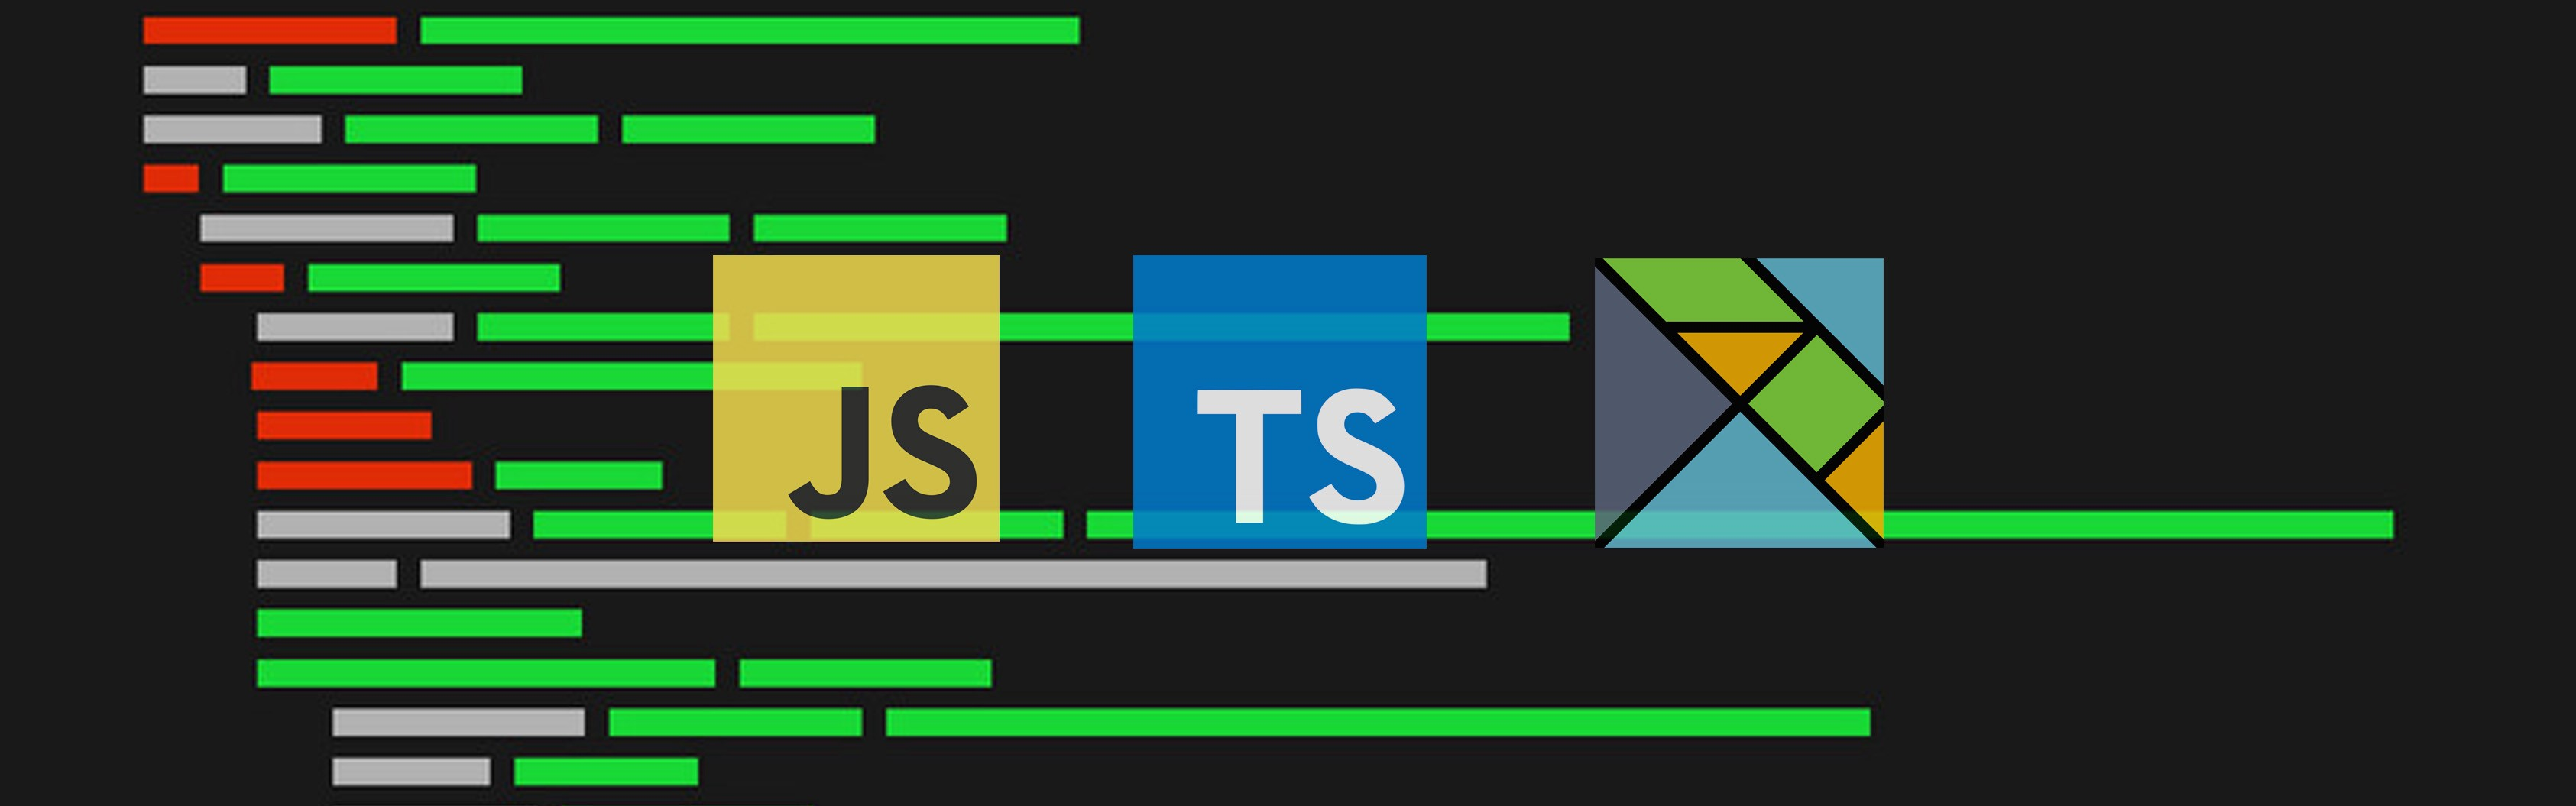 From Javascript to Typescript to Elm - ITNEXT